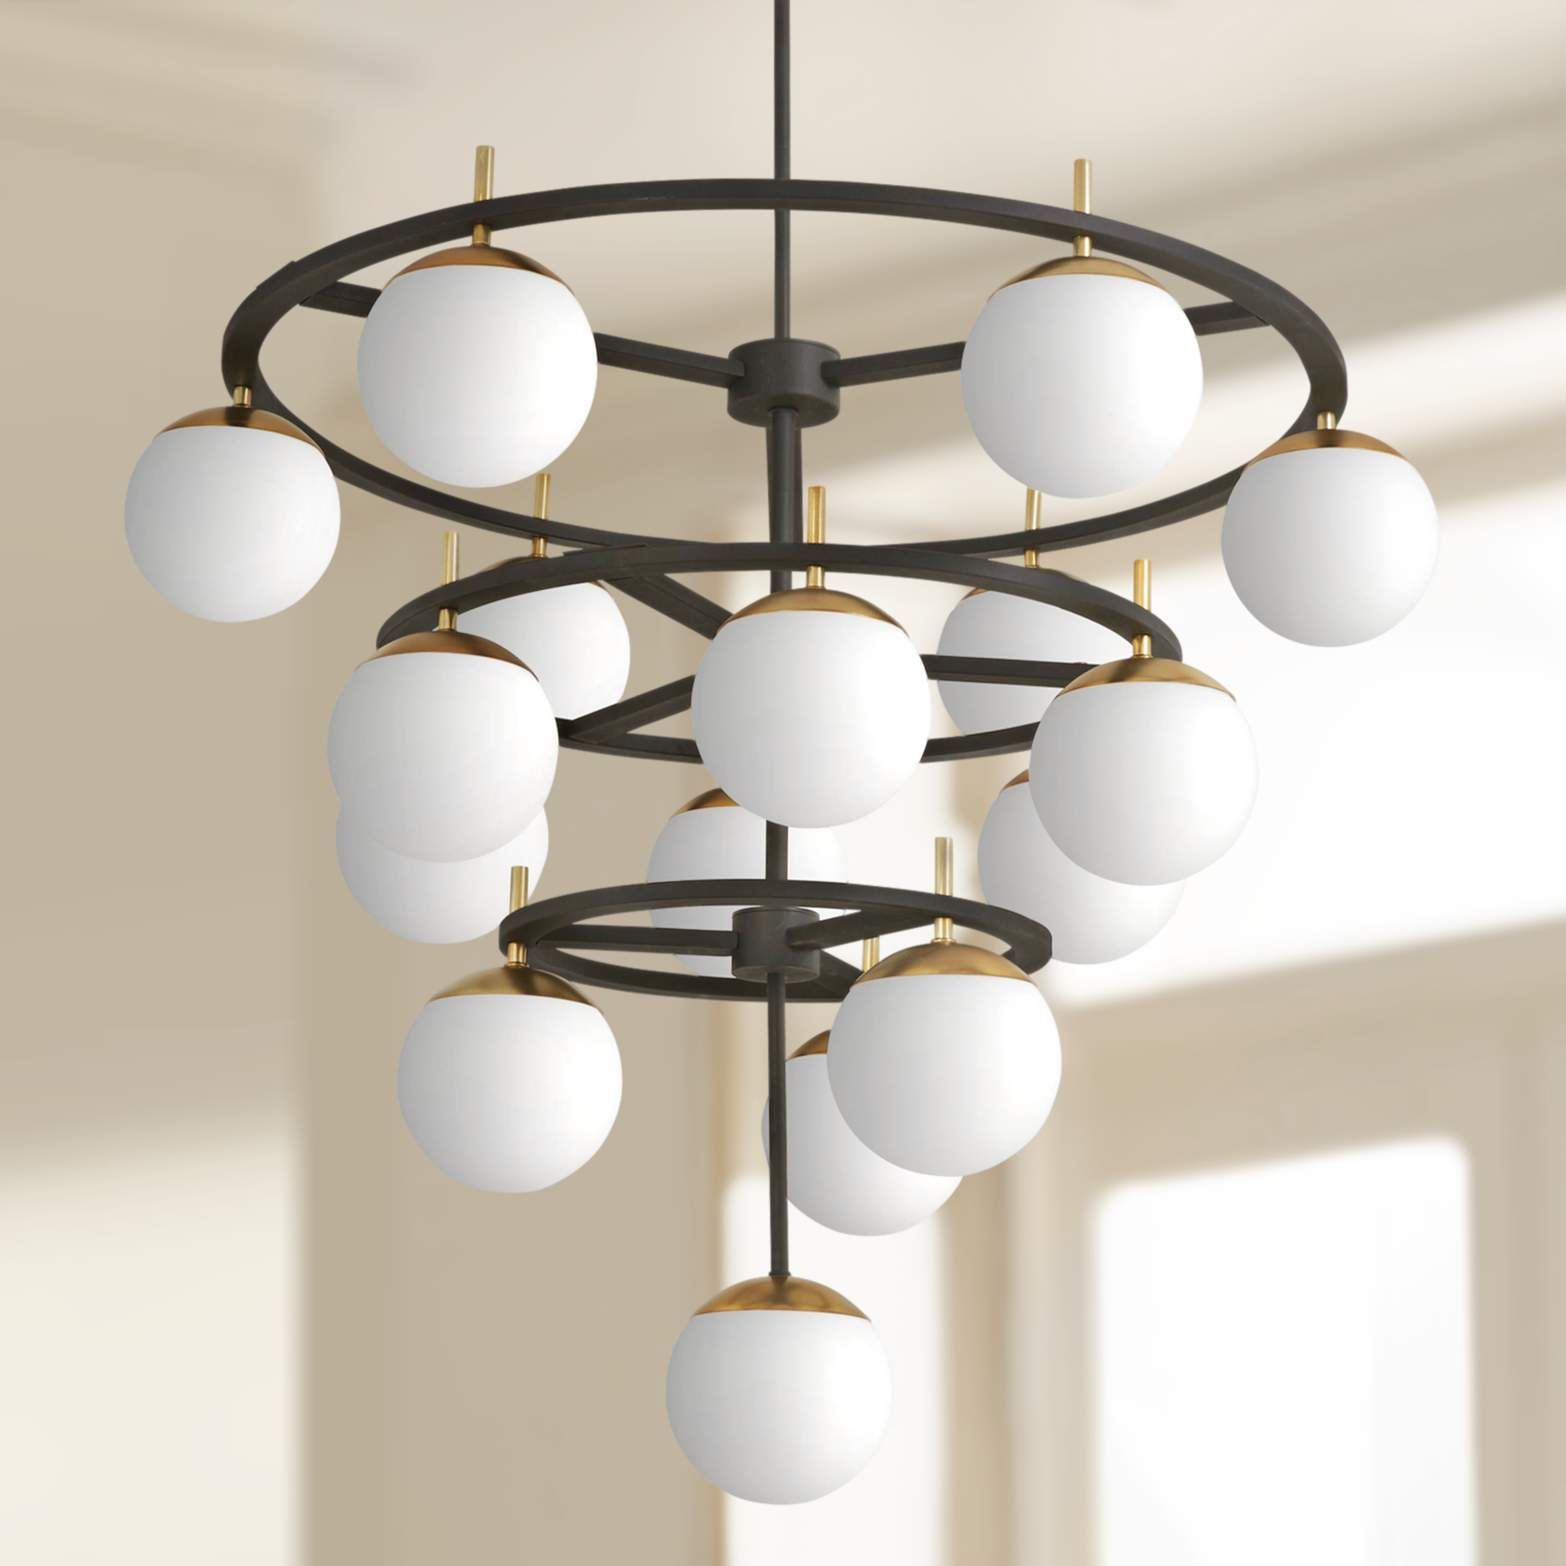 Alluria 36 W Weathered Black And Gold 16 Light Chandelier 58d81 Lamps Plus In 2020 Chandelier Lighting Contemporary Light Fixtures Chandelier Lighting Fixtures